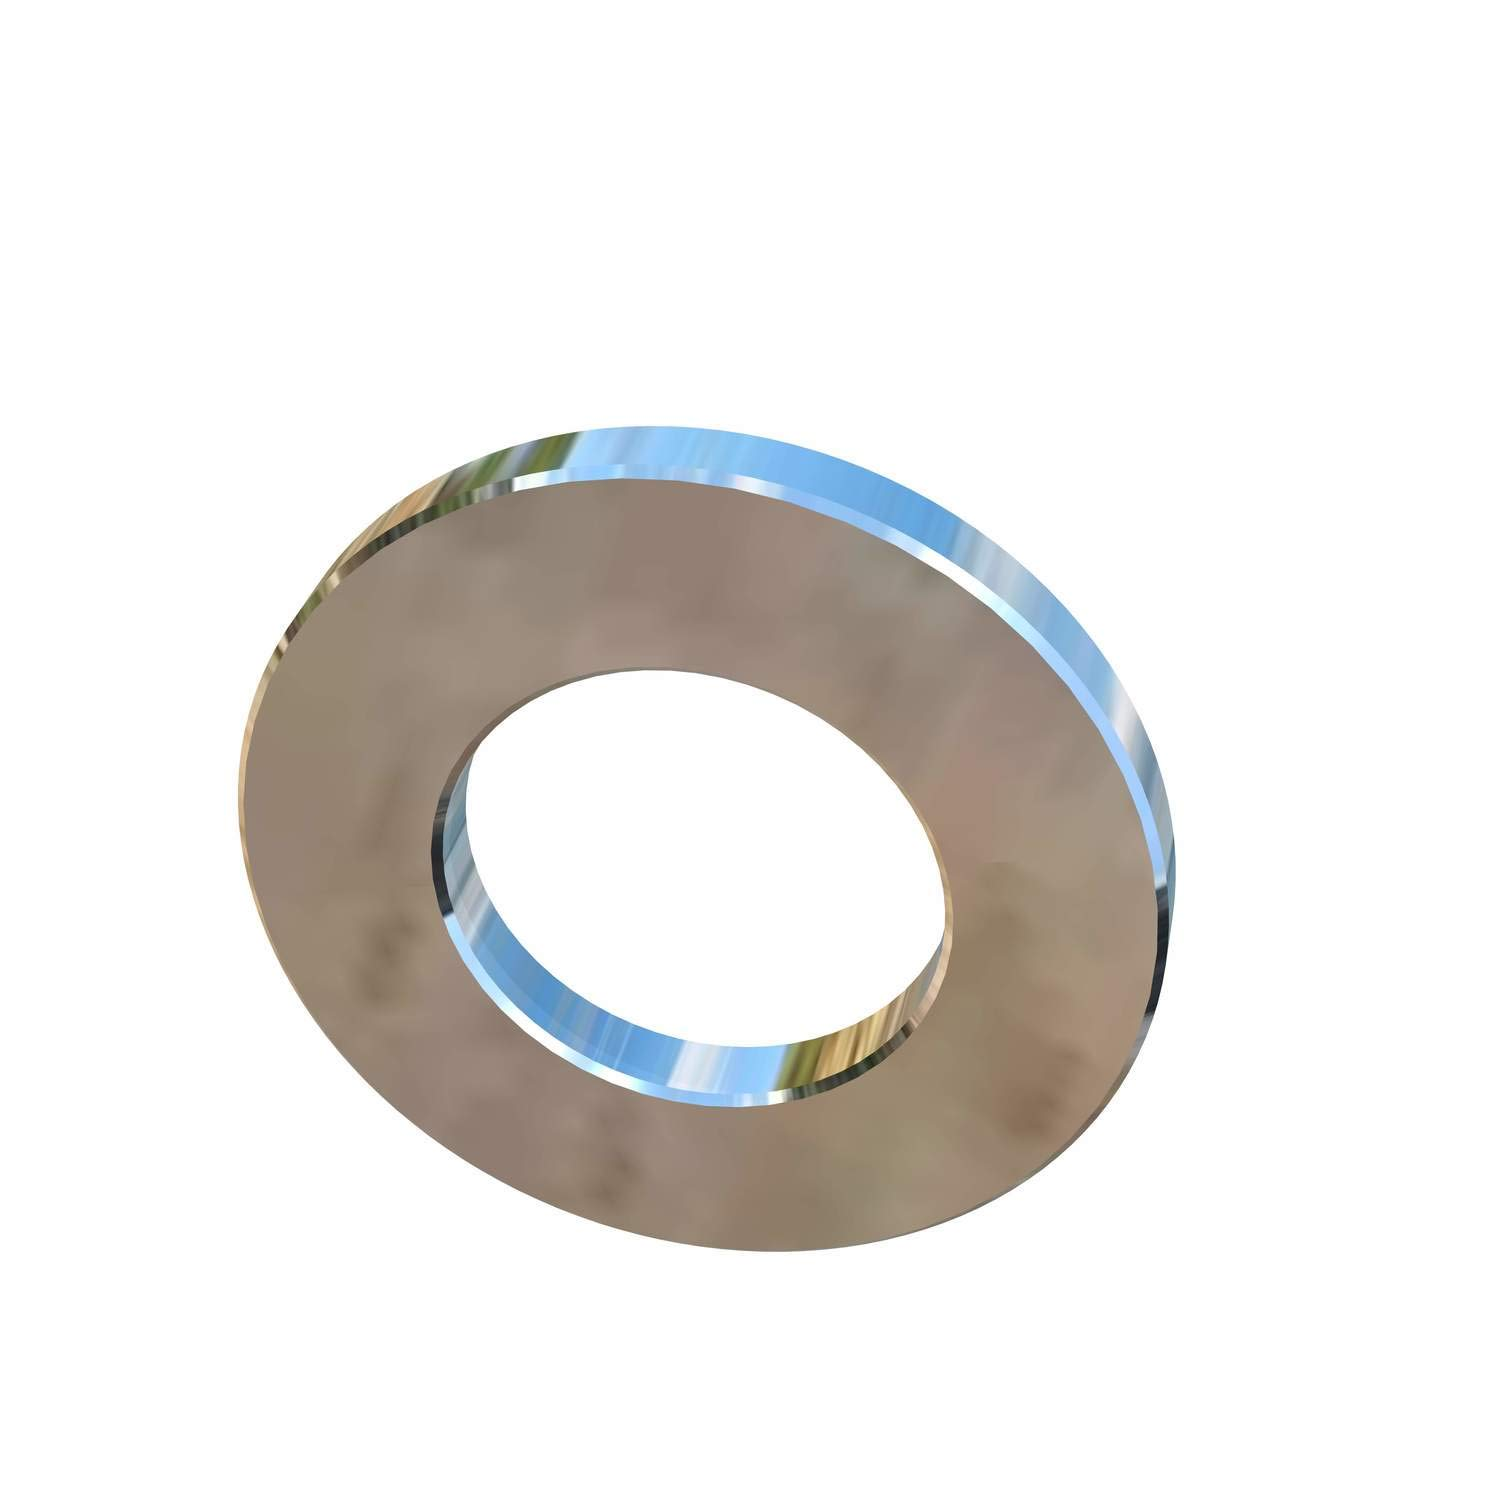 Allied Titanium 0001701, (Pack of 20) M12 Titanium Flat Washer 2.5mm Thick X 24mm Outside Diameter, Grade 2 (CP)